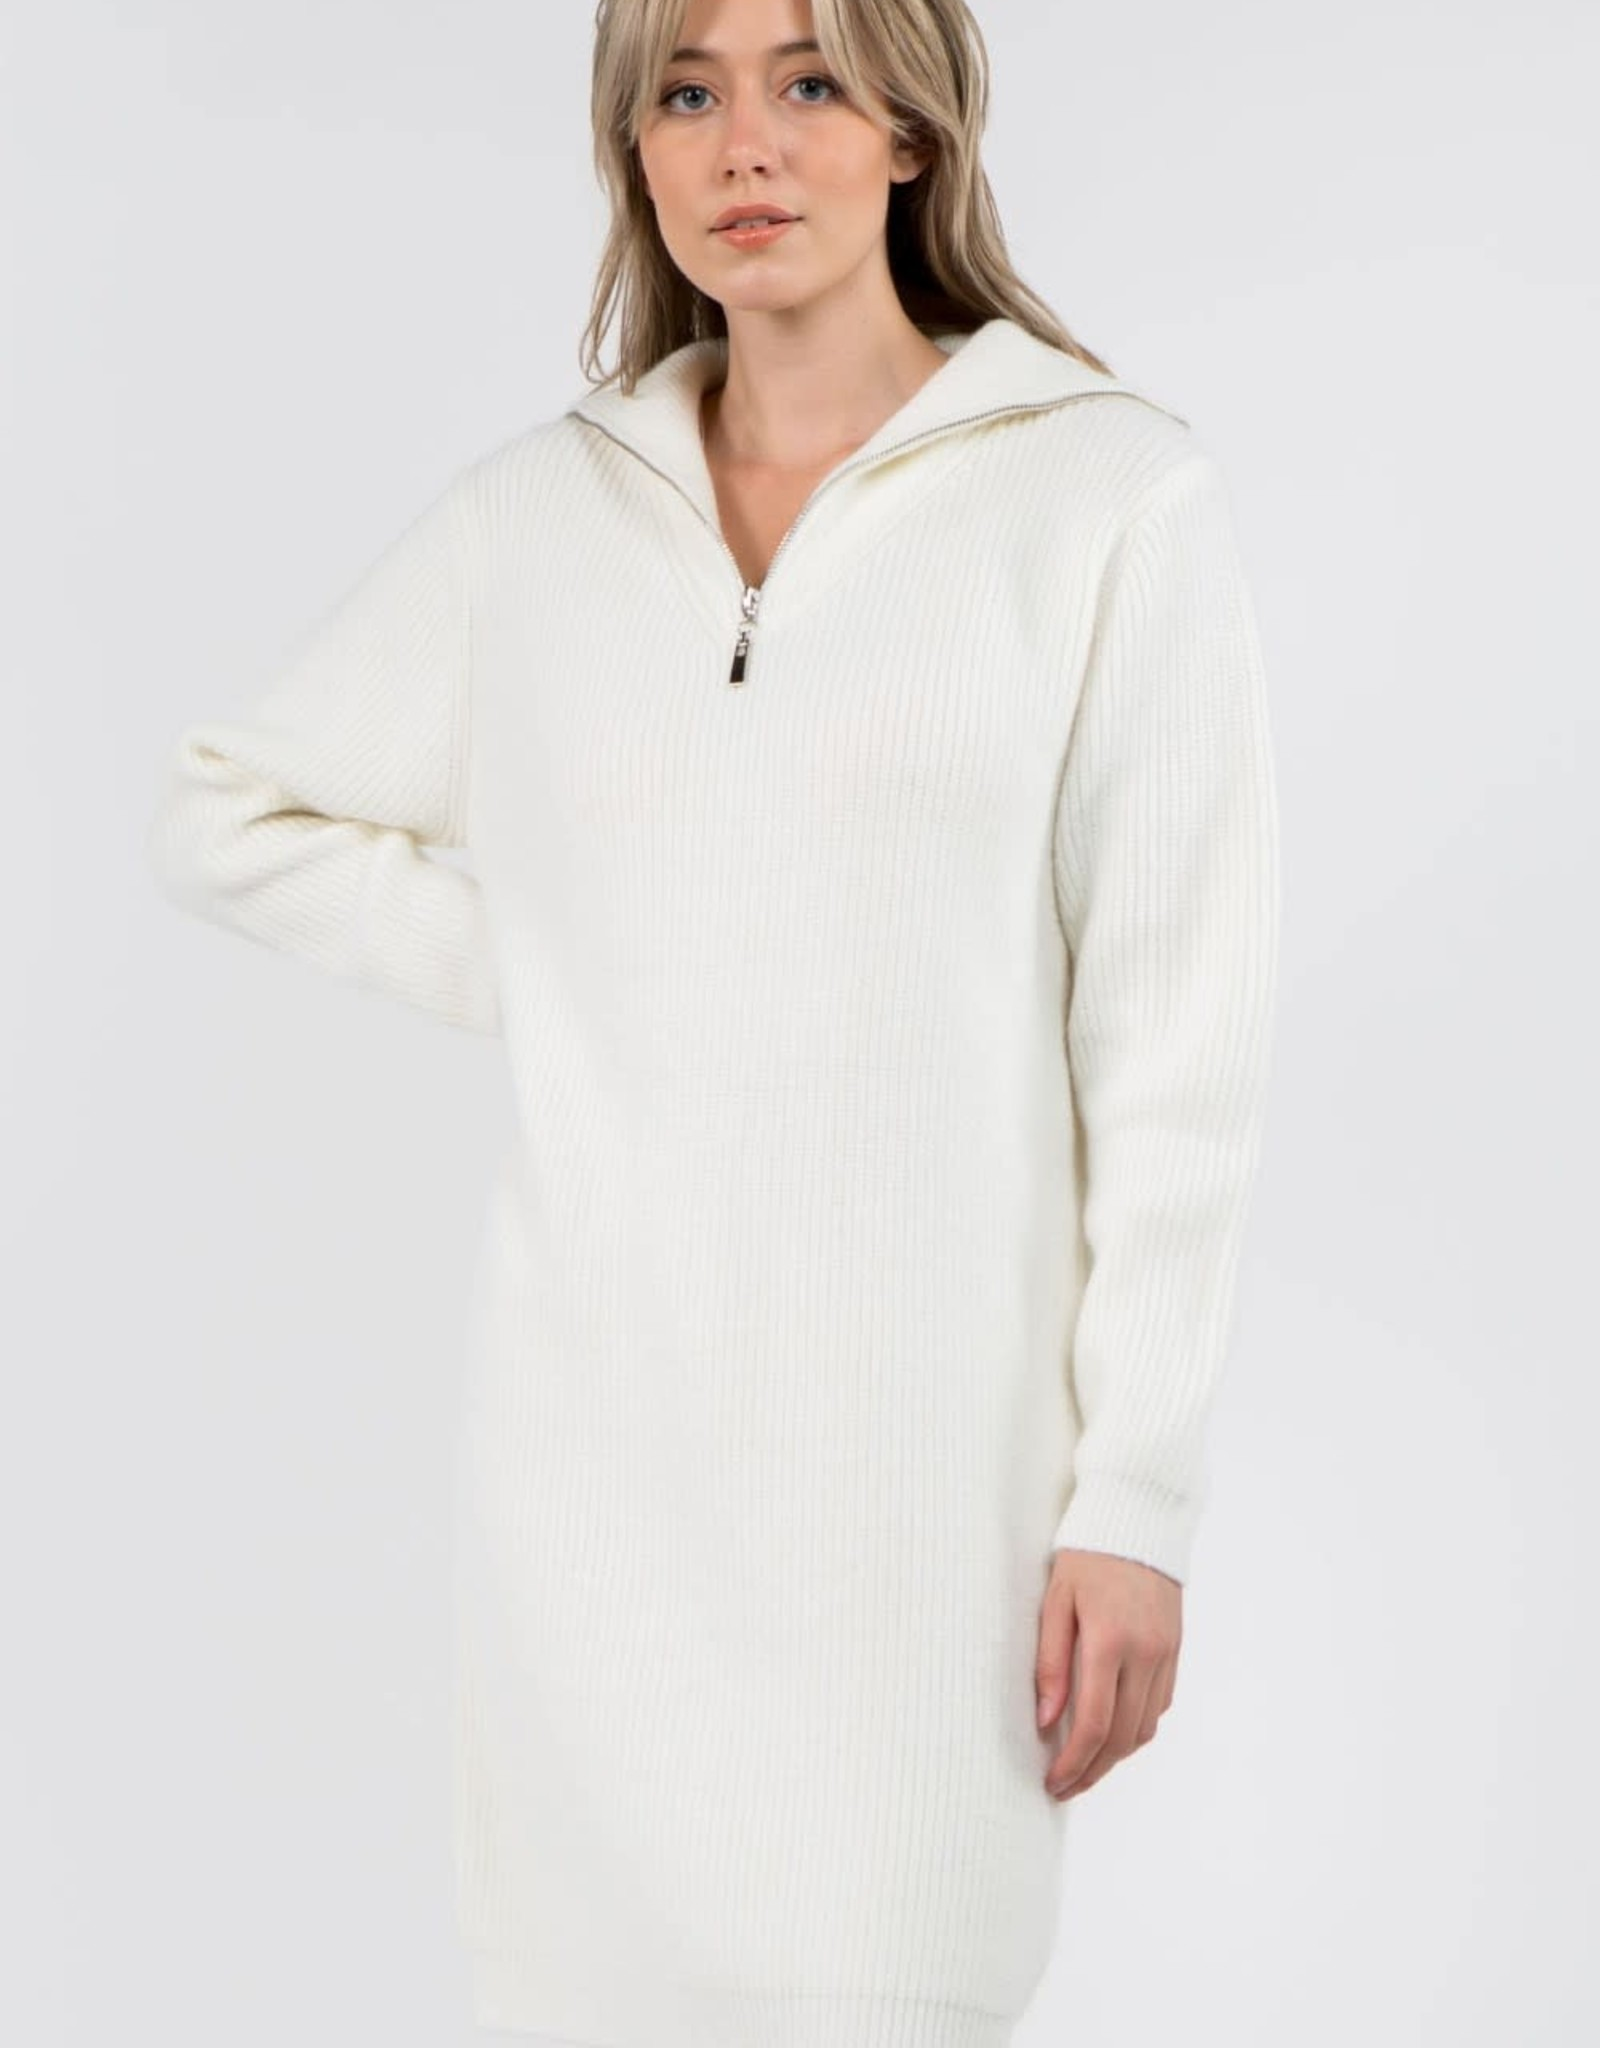 Miss Bliss LS Collared Dress- Ivory